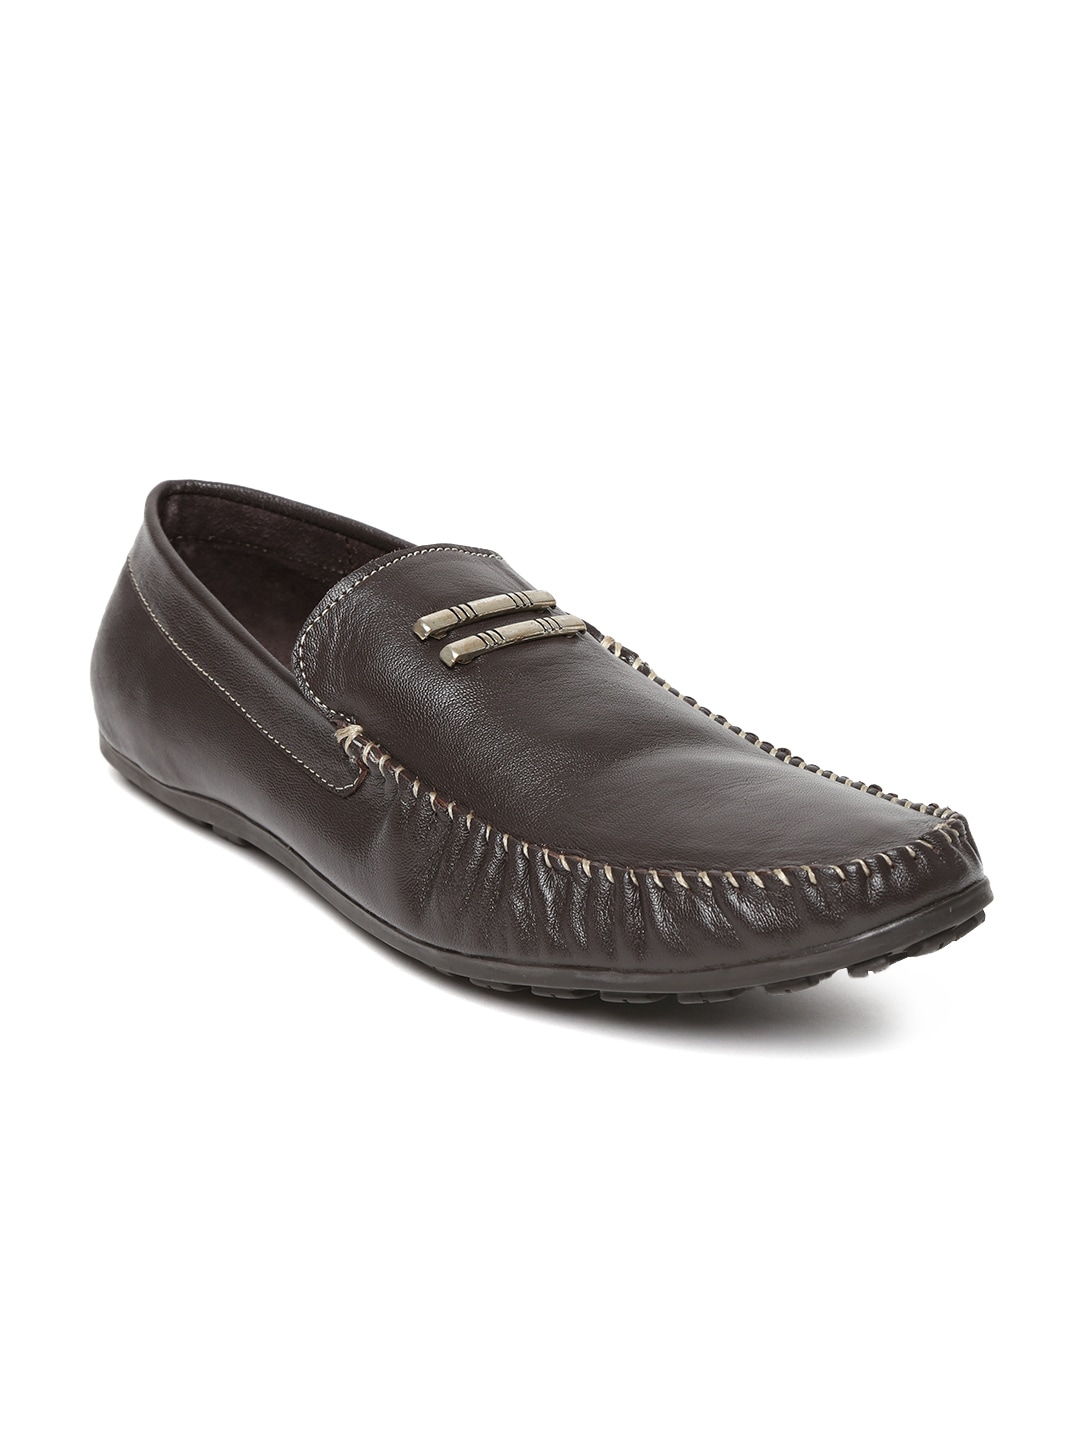 Famozi Famozi Men Coffee Brown Leather Loafers (Multicolor)